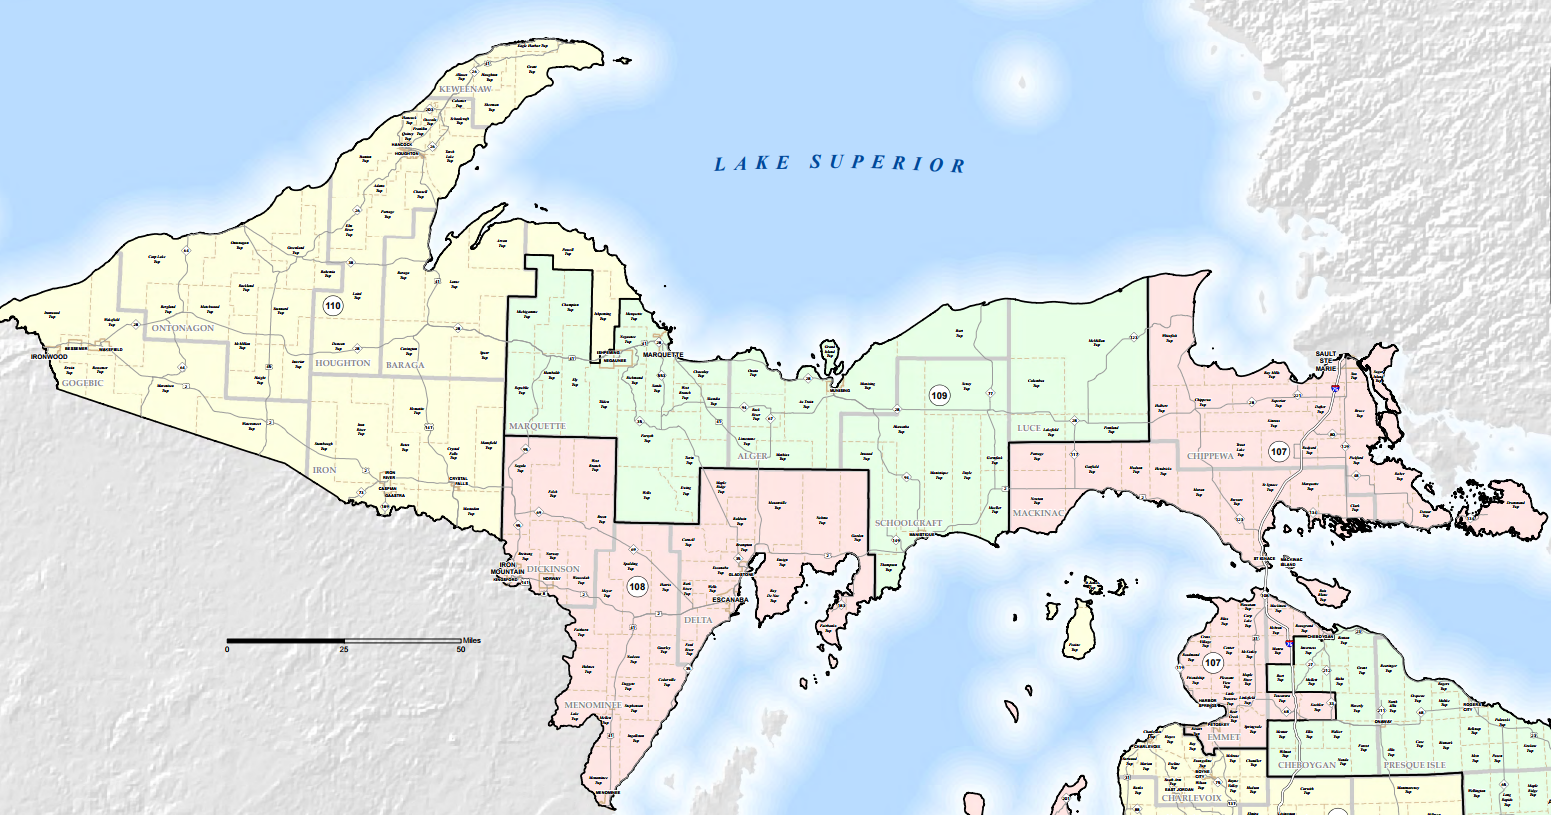 A Case for a New State: The State of Superior – The State of